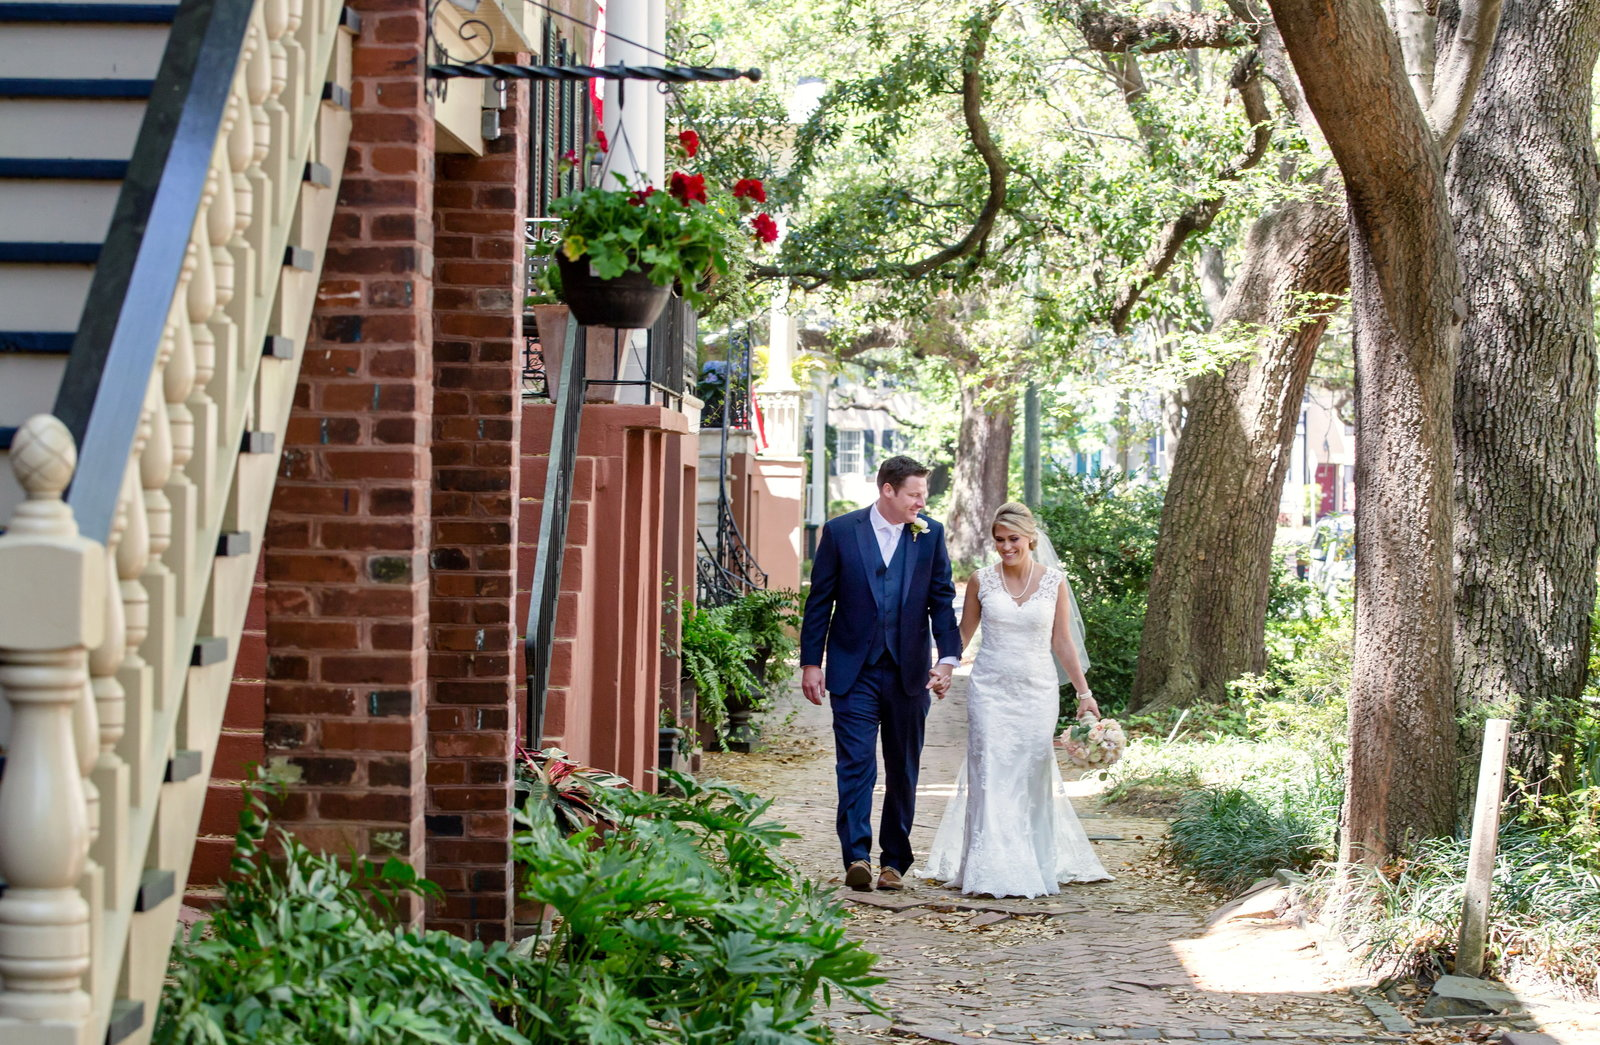 Chrissy + Andrew, Savannah Wedding, Bobbi Brinkman Photography